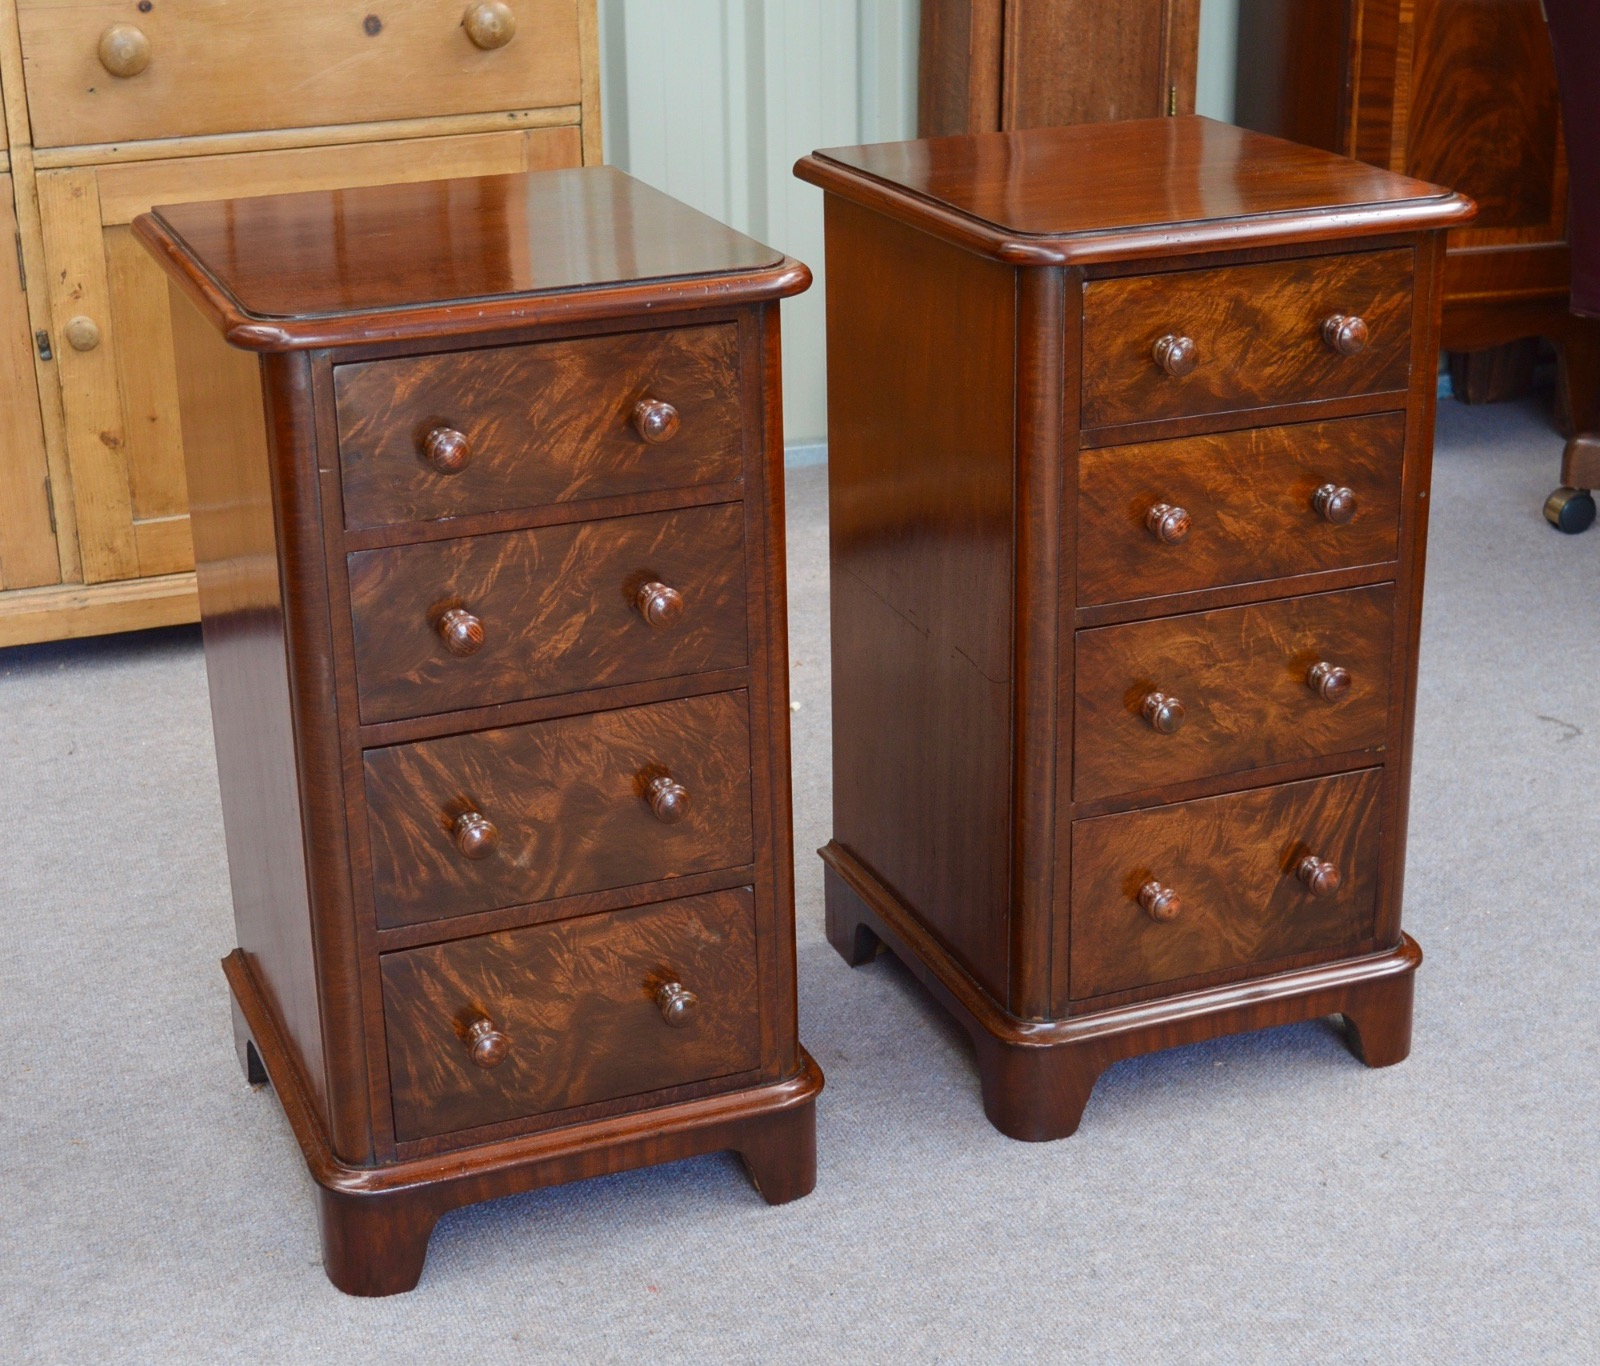 Picture of: Pair Of Antique Victorian Mahogany Bedside Chests Of Drawers Bedside Cabinets La67319 Loveantiques Com